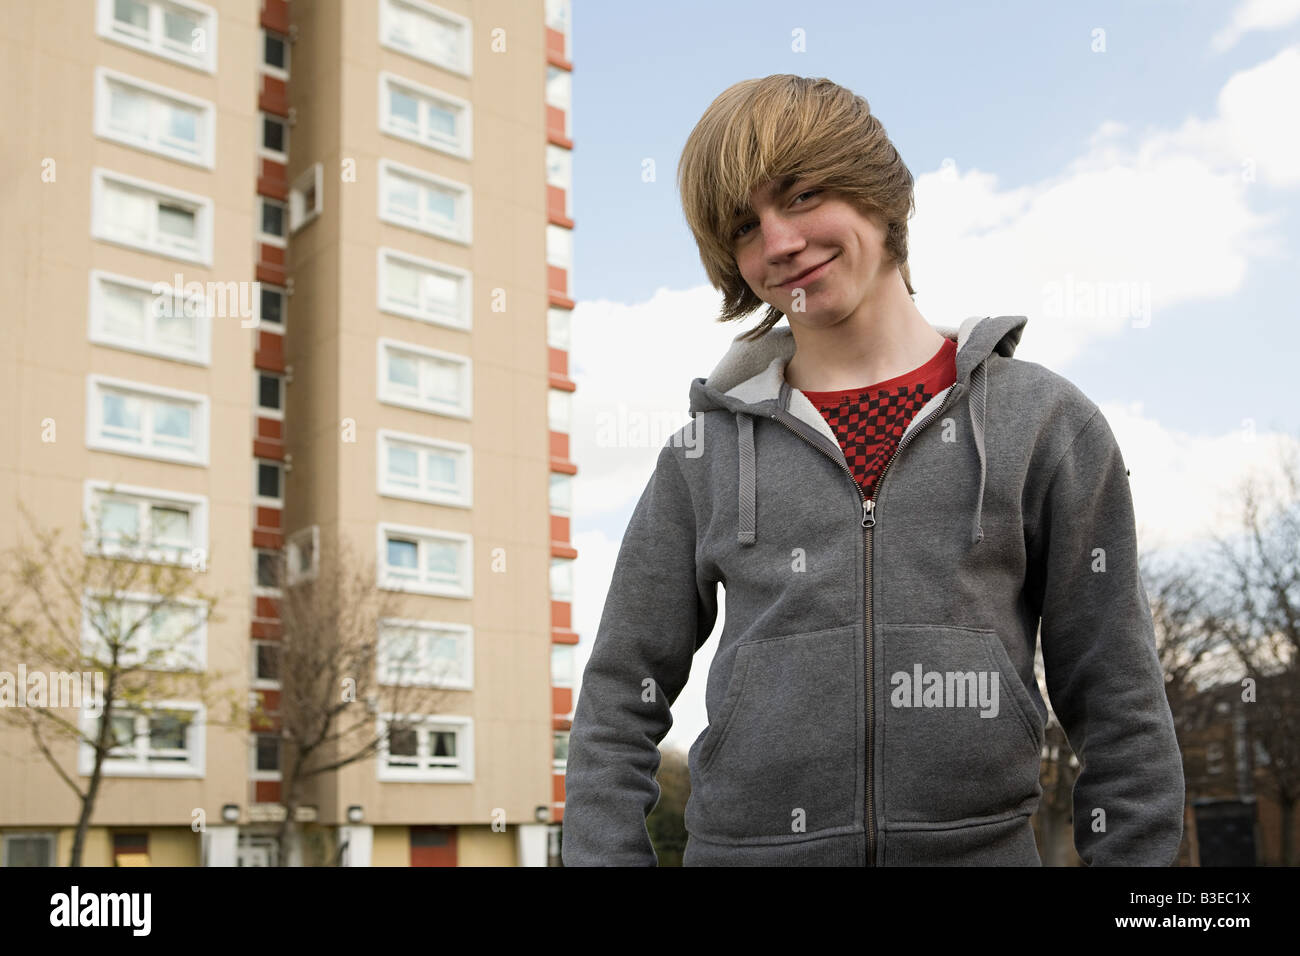 Teenage boy by tower block - Stock Image